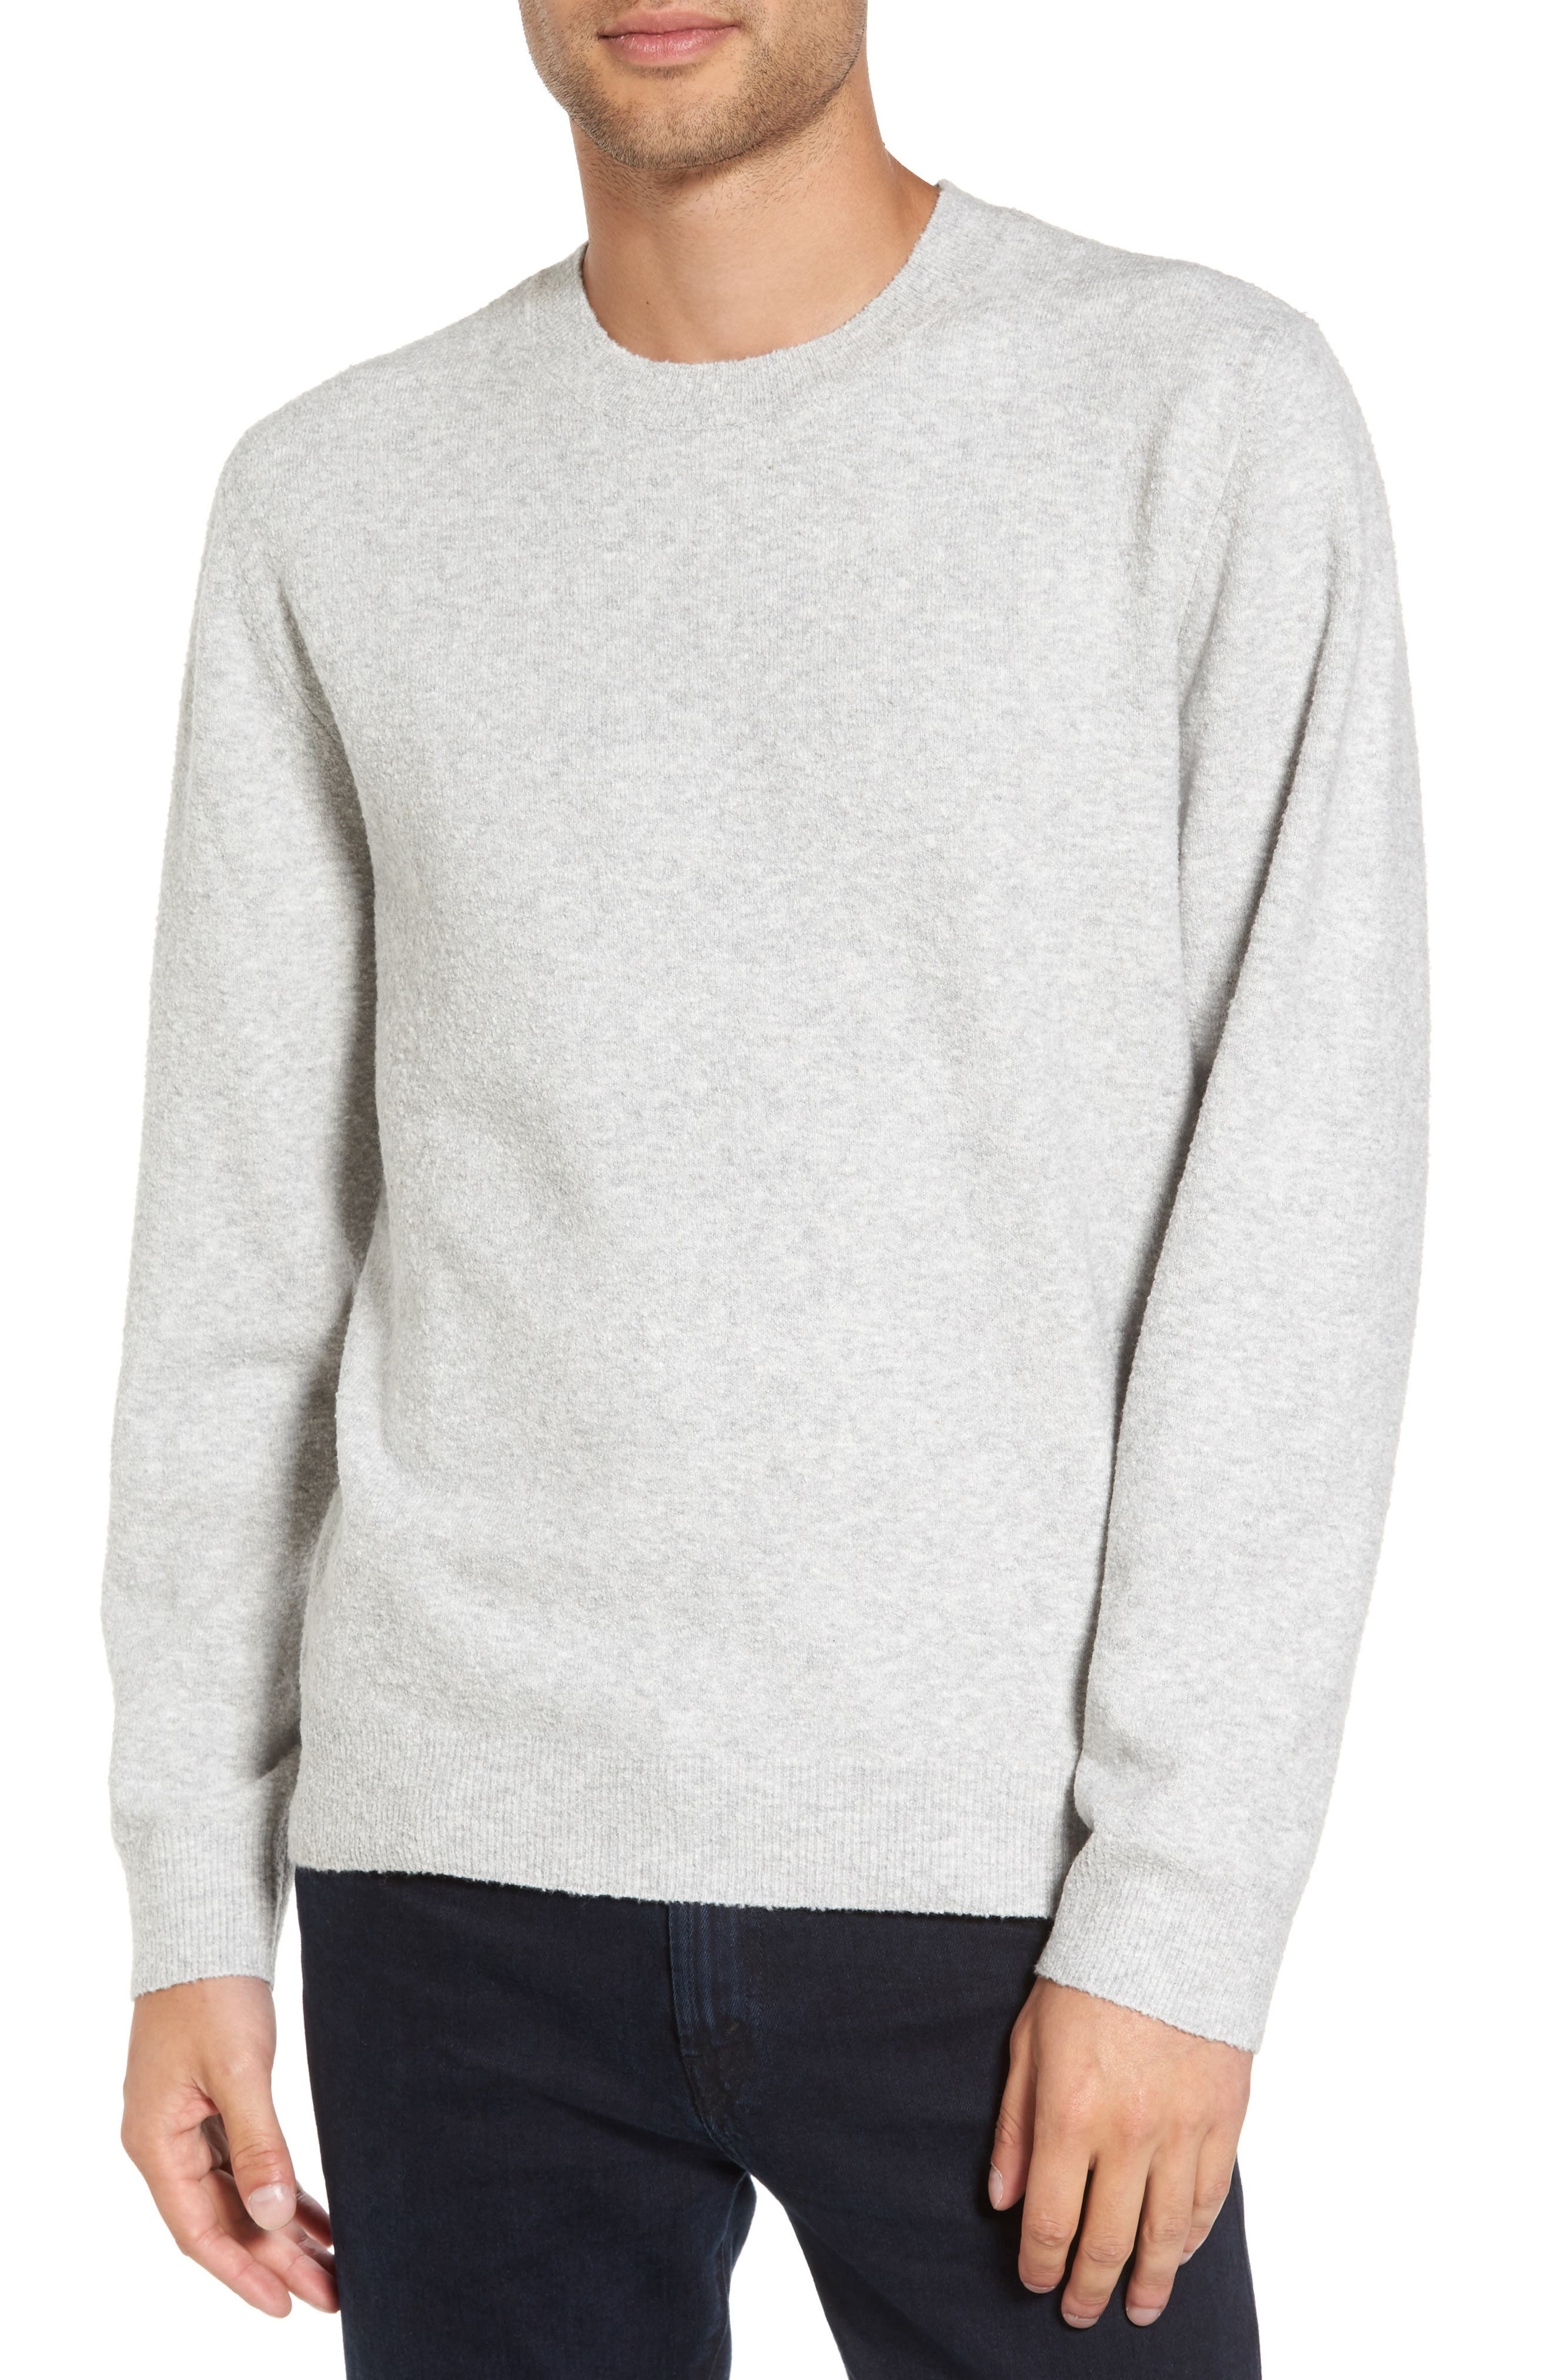 Nathaniel Classic Fit Sweater,                             Main thumbnail 1, color,                             Lunar Surface